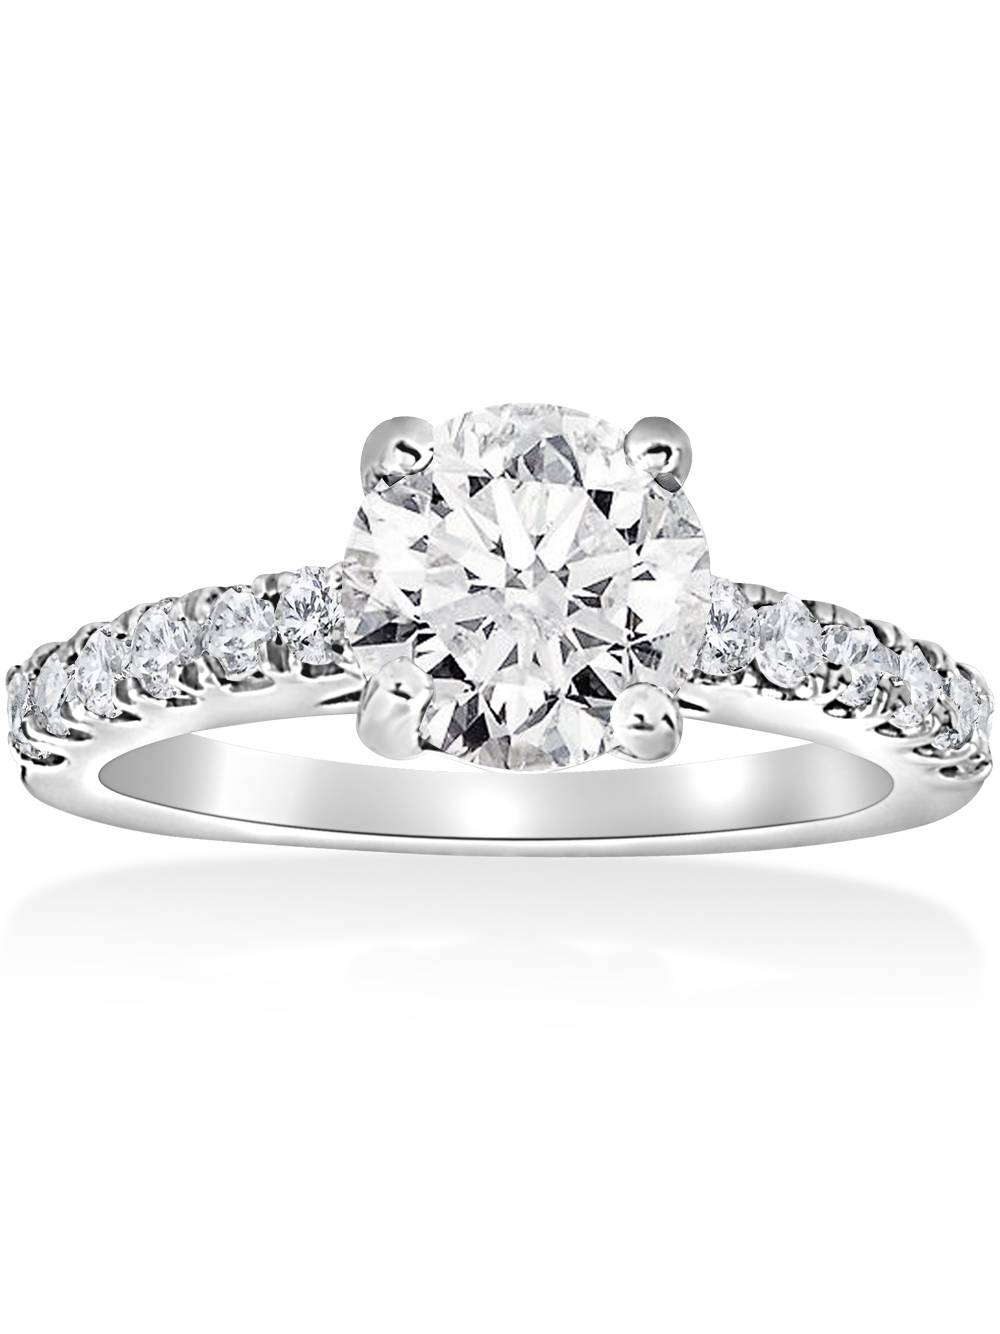 G SI 1 1 2ct Diamond Solitaire With Accents Round Engagement Ring 14k White Gold by Pompeii3